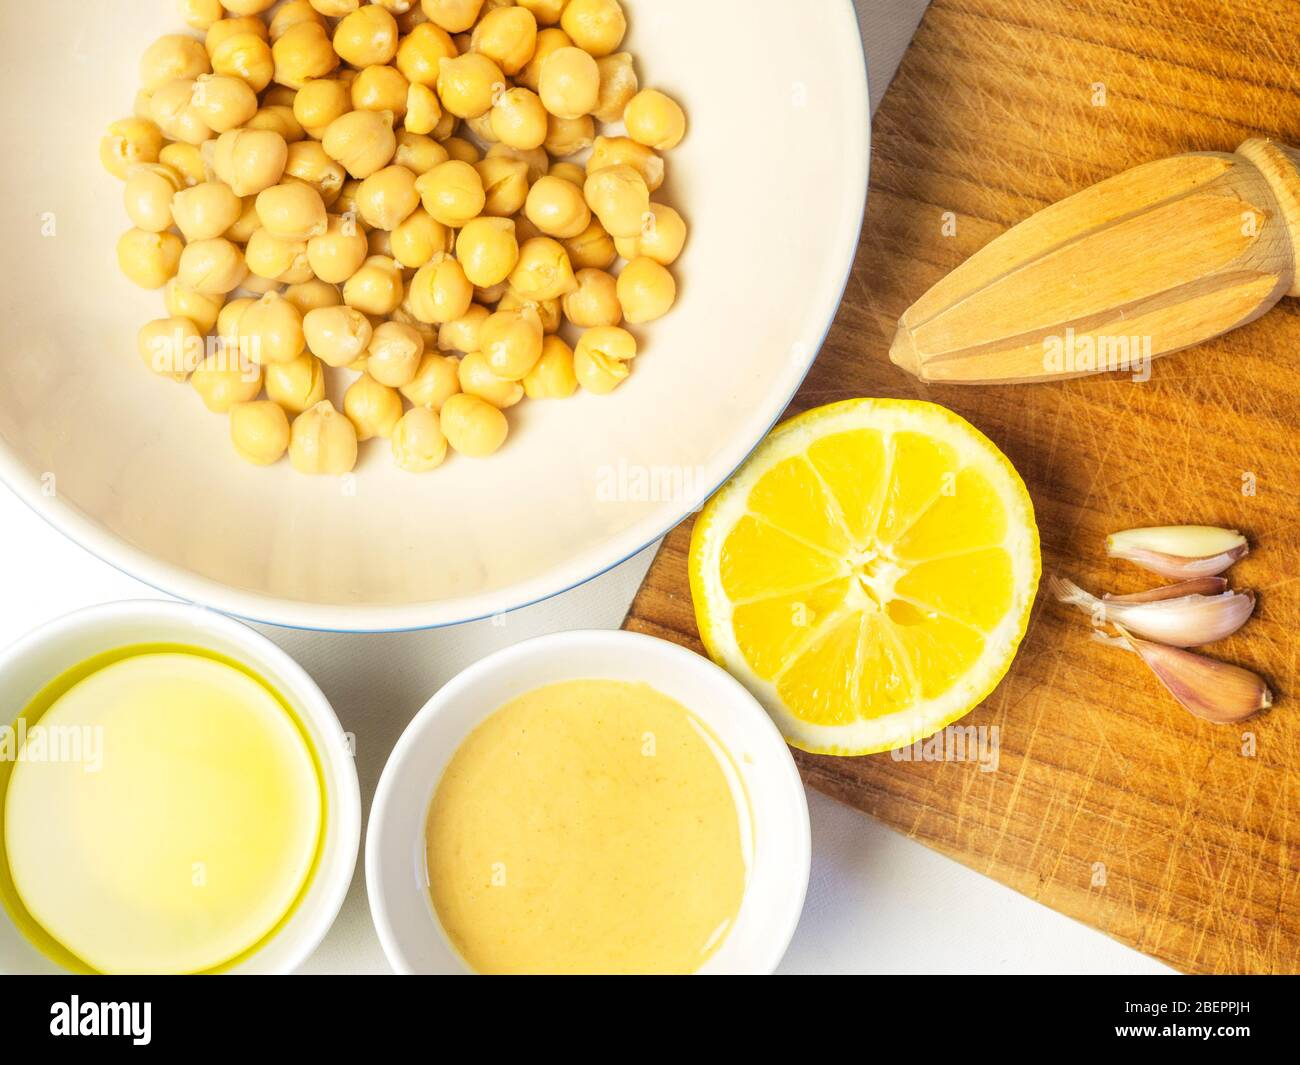 Bowls of chick peas olive oil and tahini with garlic cloves half a lemon and a lemon squeezer for making hummus Stock Photo